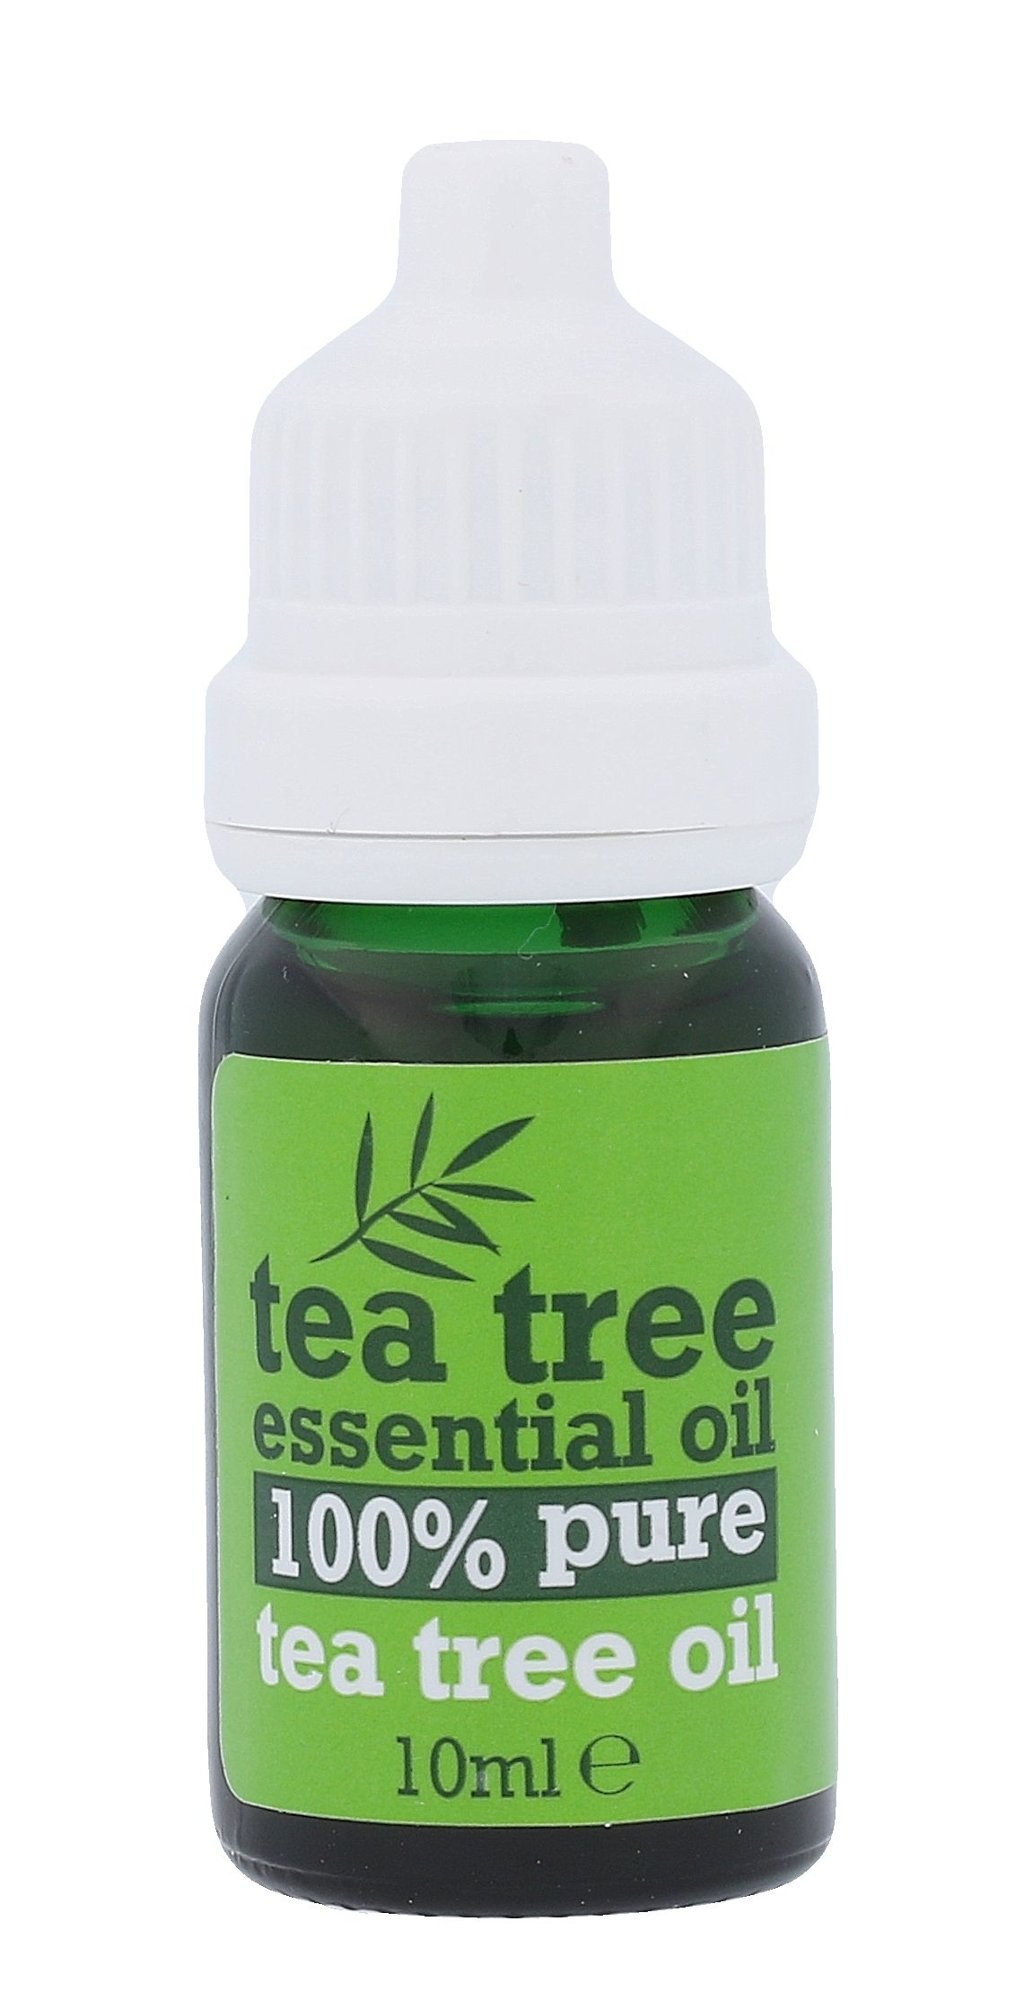 Xpel Tea Tree Cosmetic 10ml